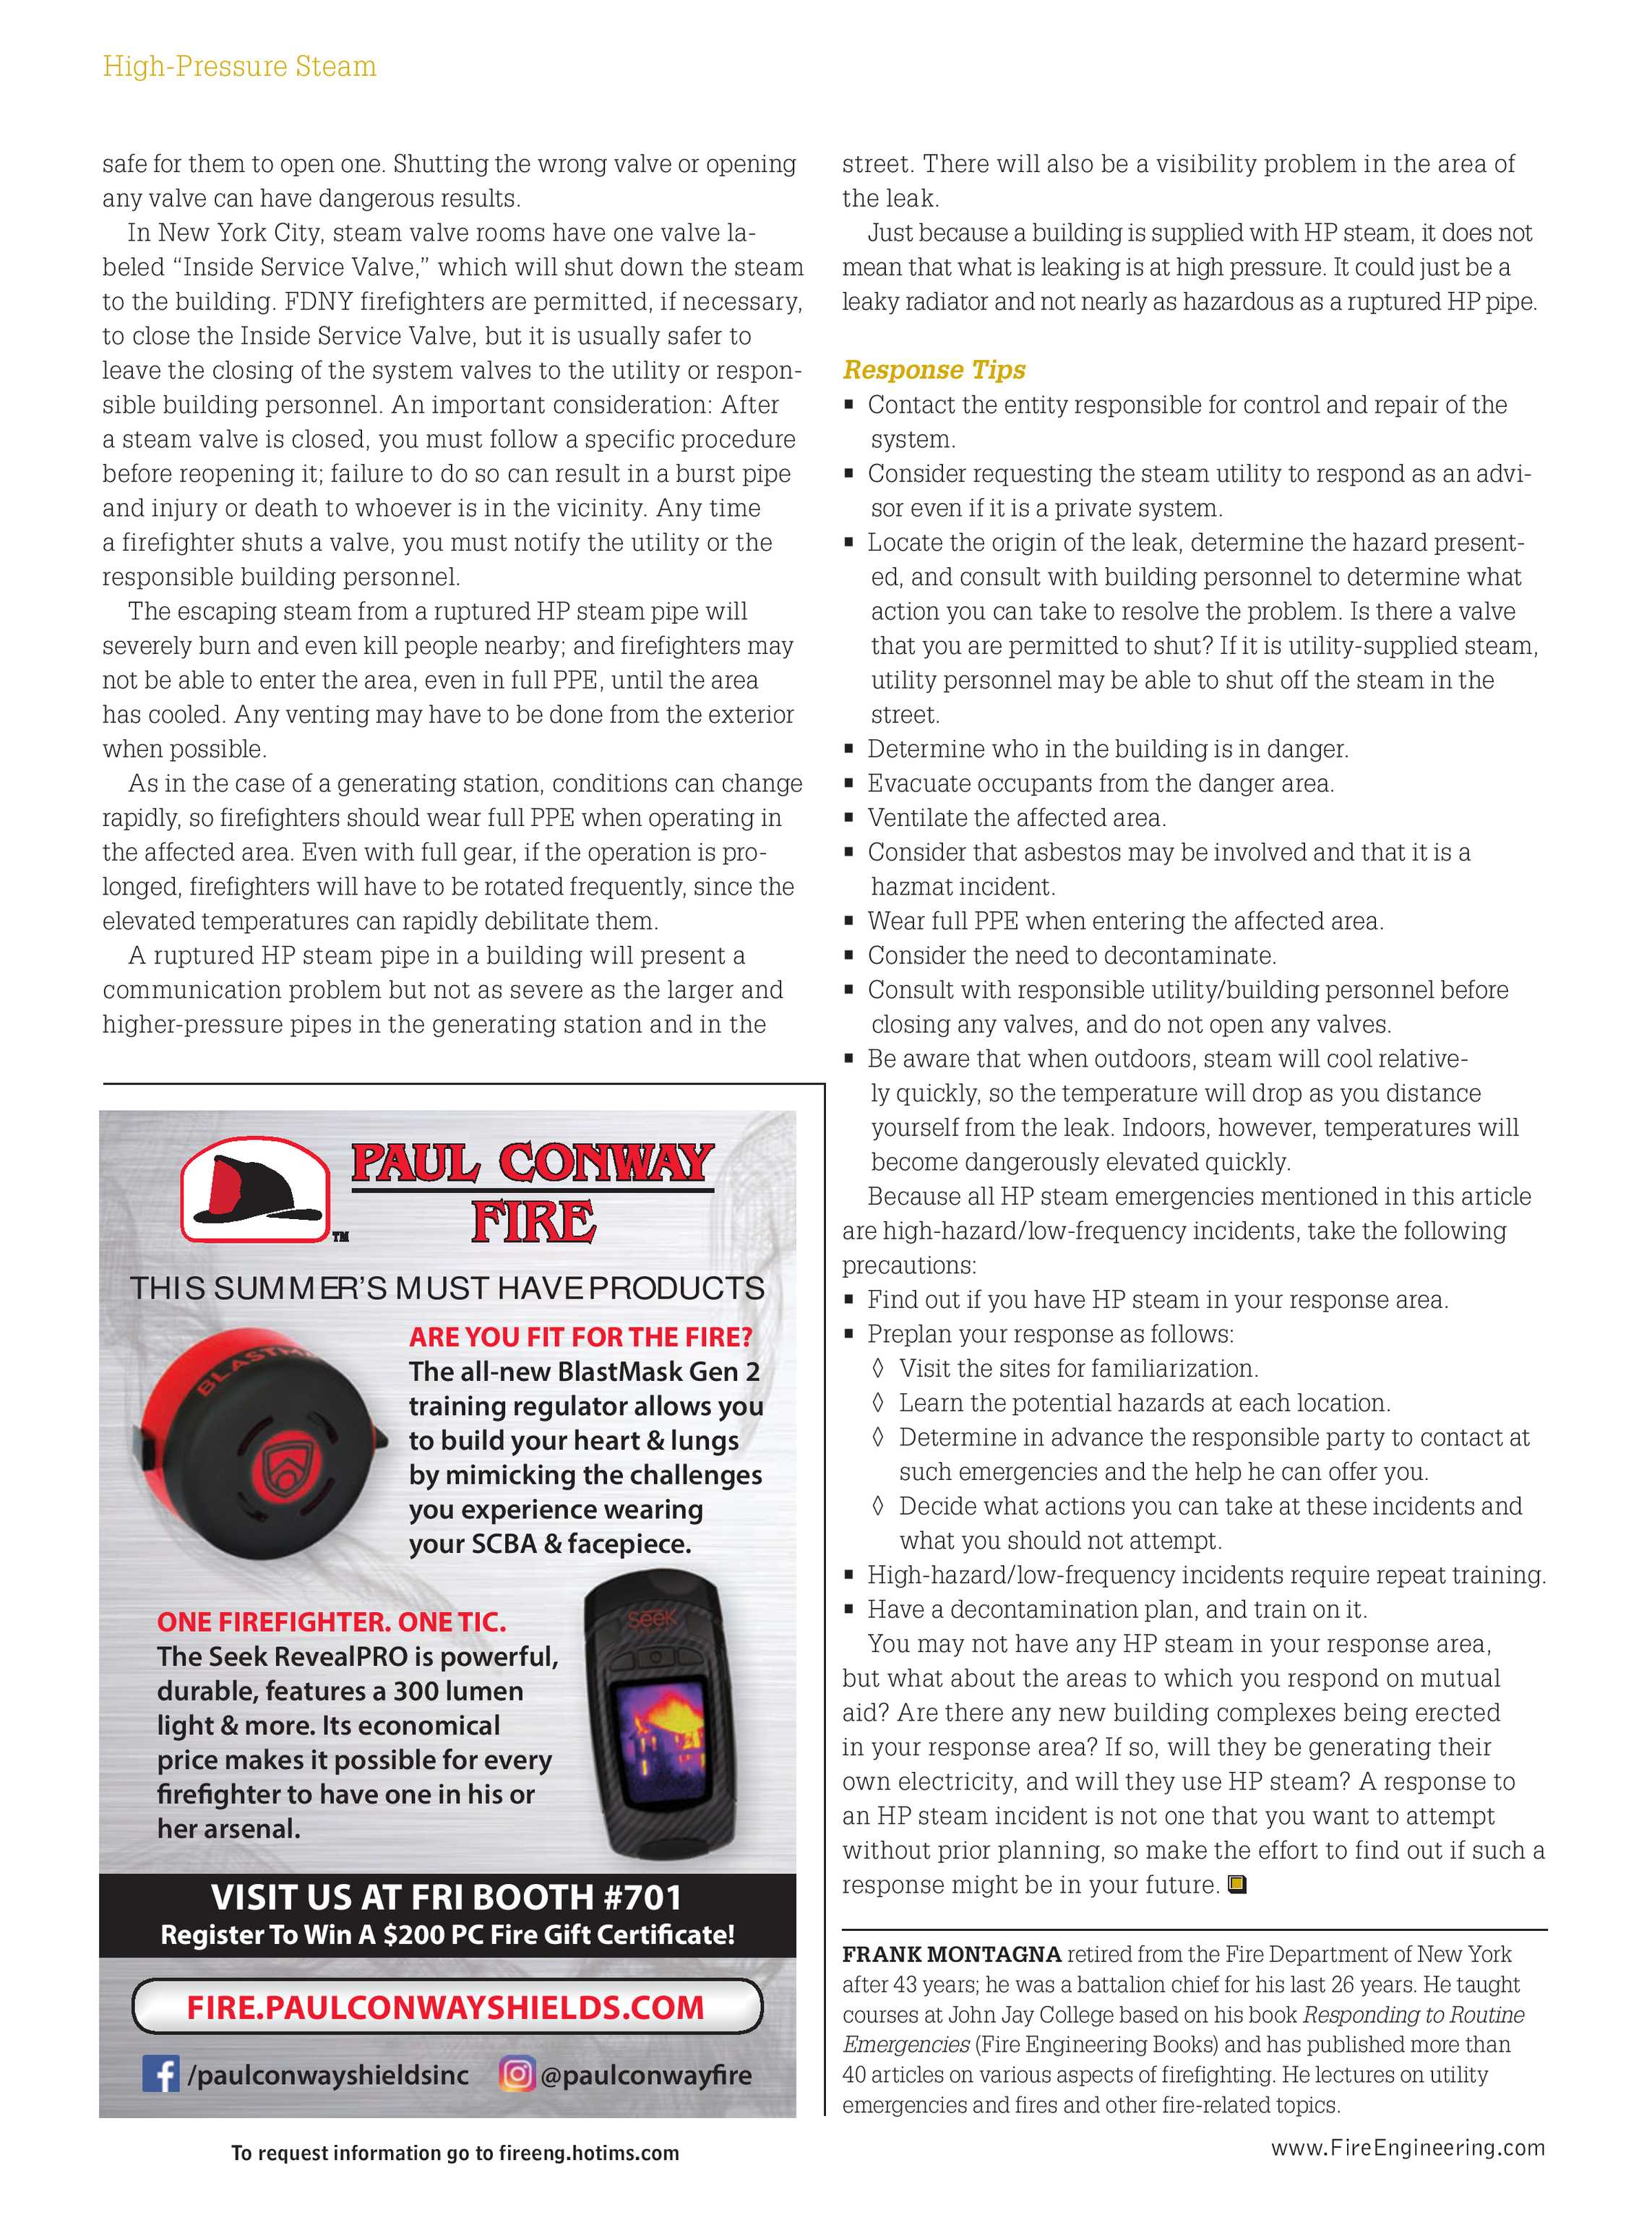 Fire Engineering - June 2017 - page 70